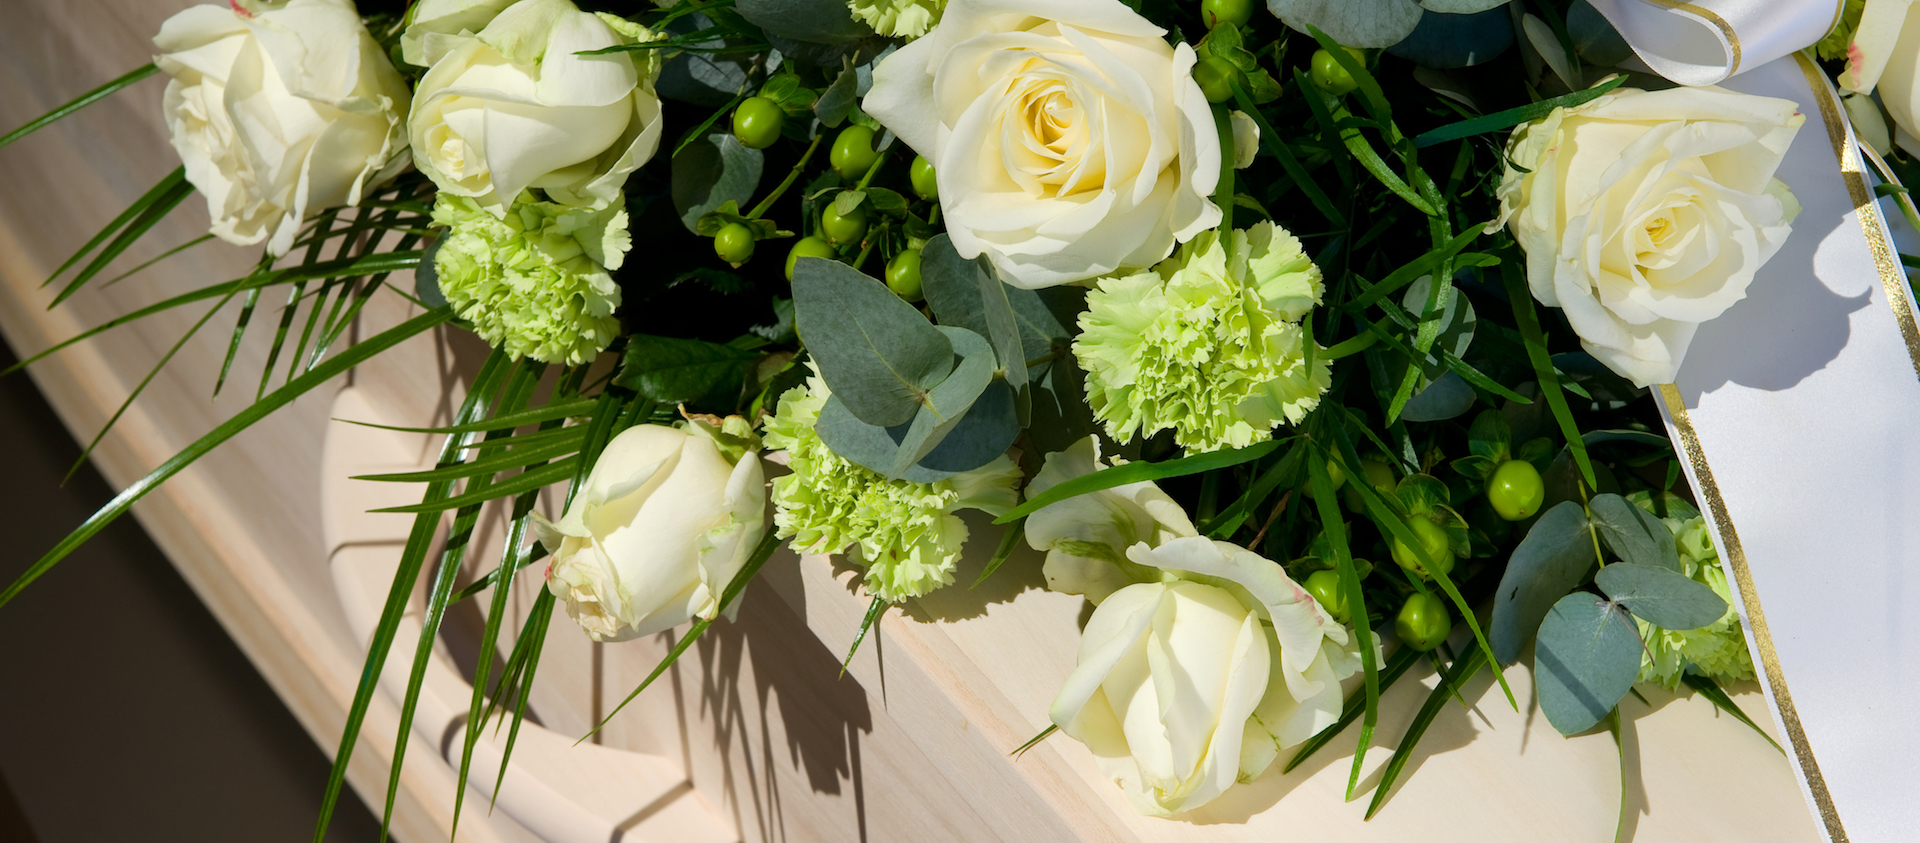 John Brown Funeral Services Funeral Directors Norwich Funeral Plans